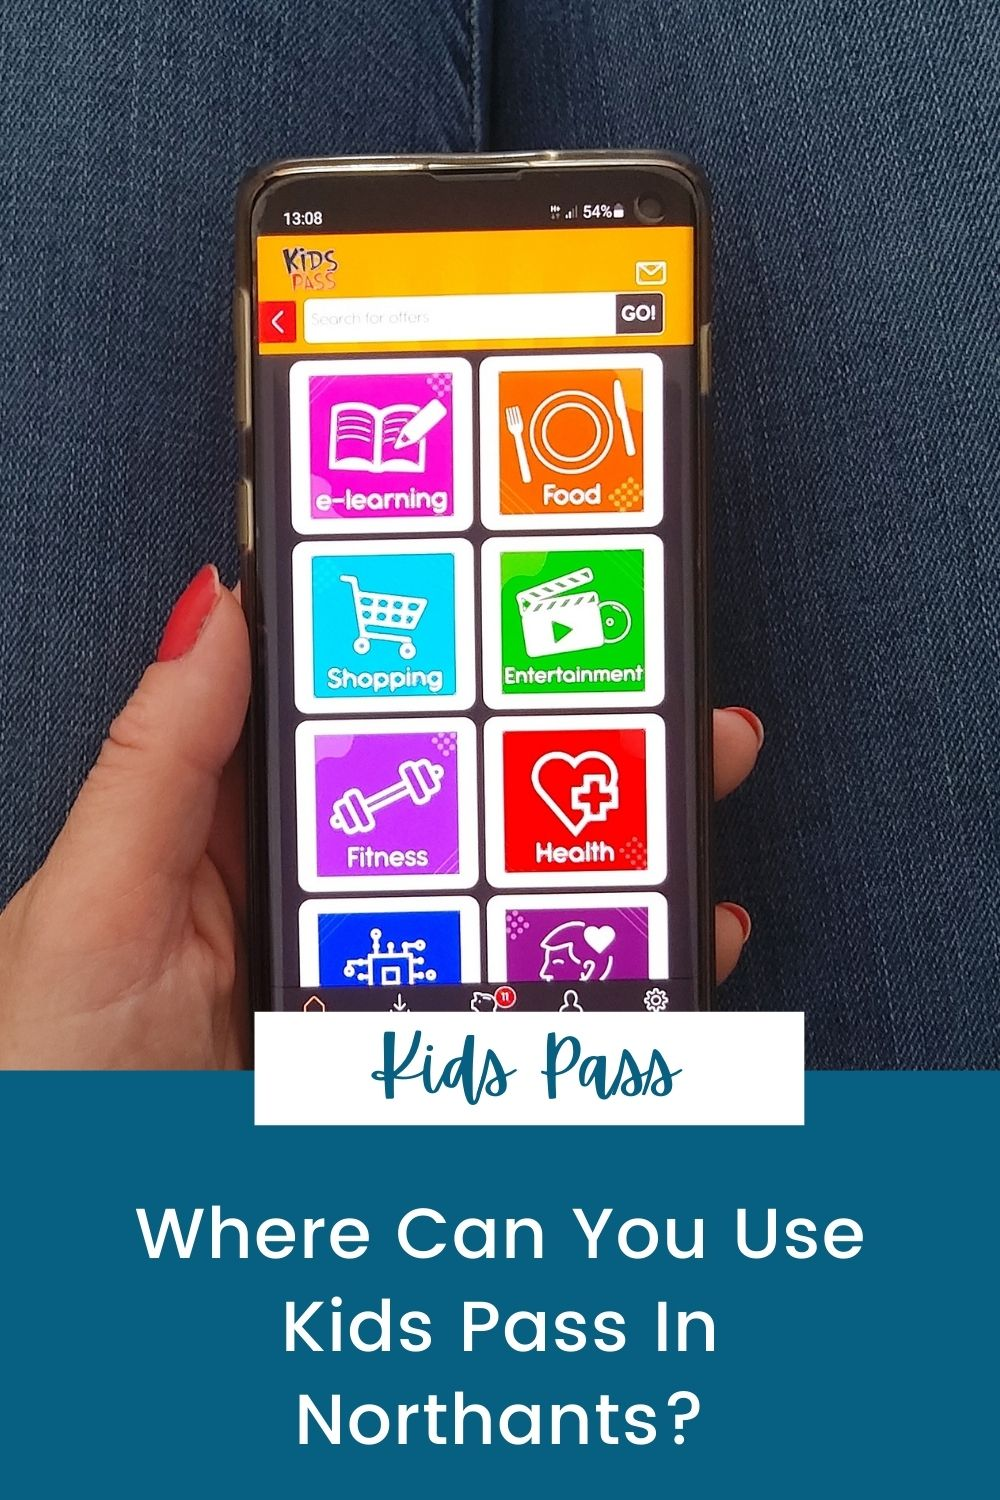 Where Can You Use Kids Pass In Northants?